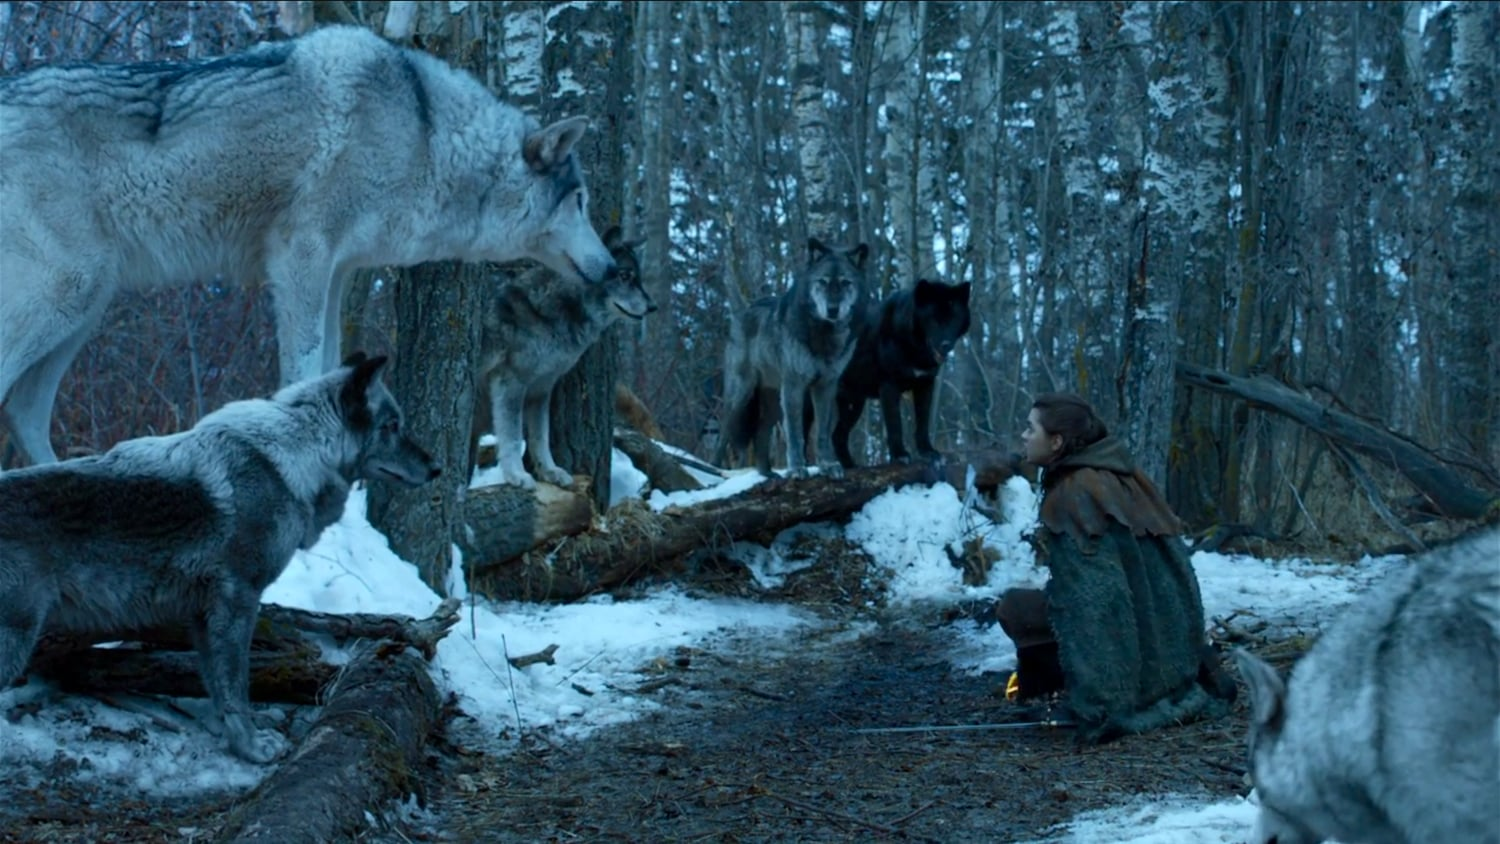 Arya encounters Nymeria five seasons since their seperation on her way back to Winterfell.